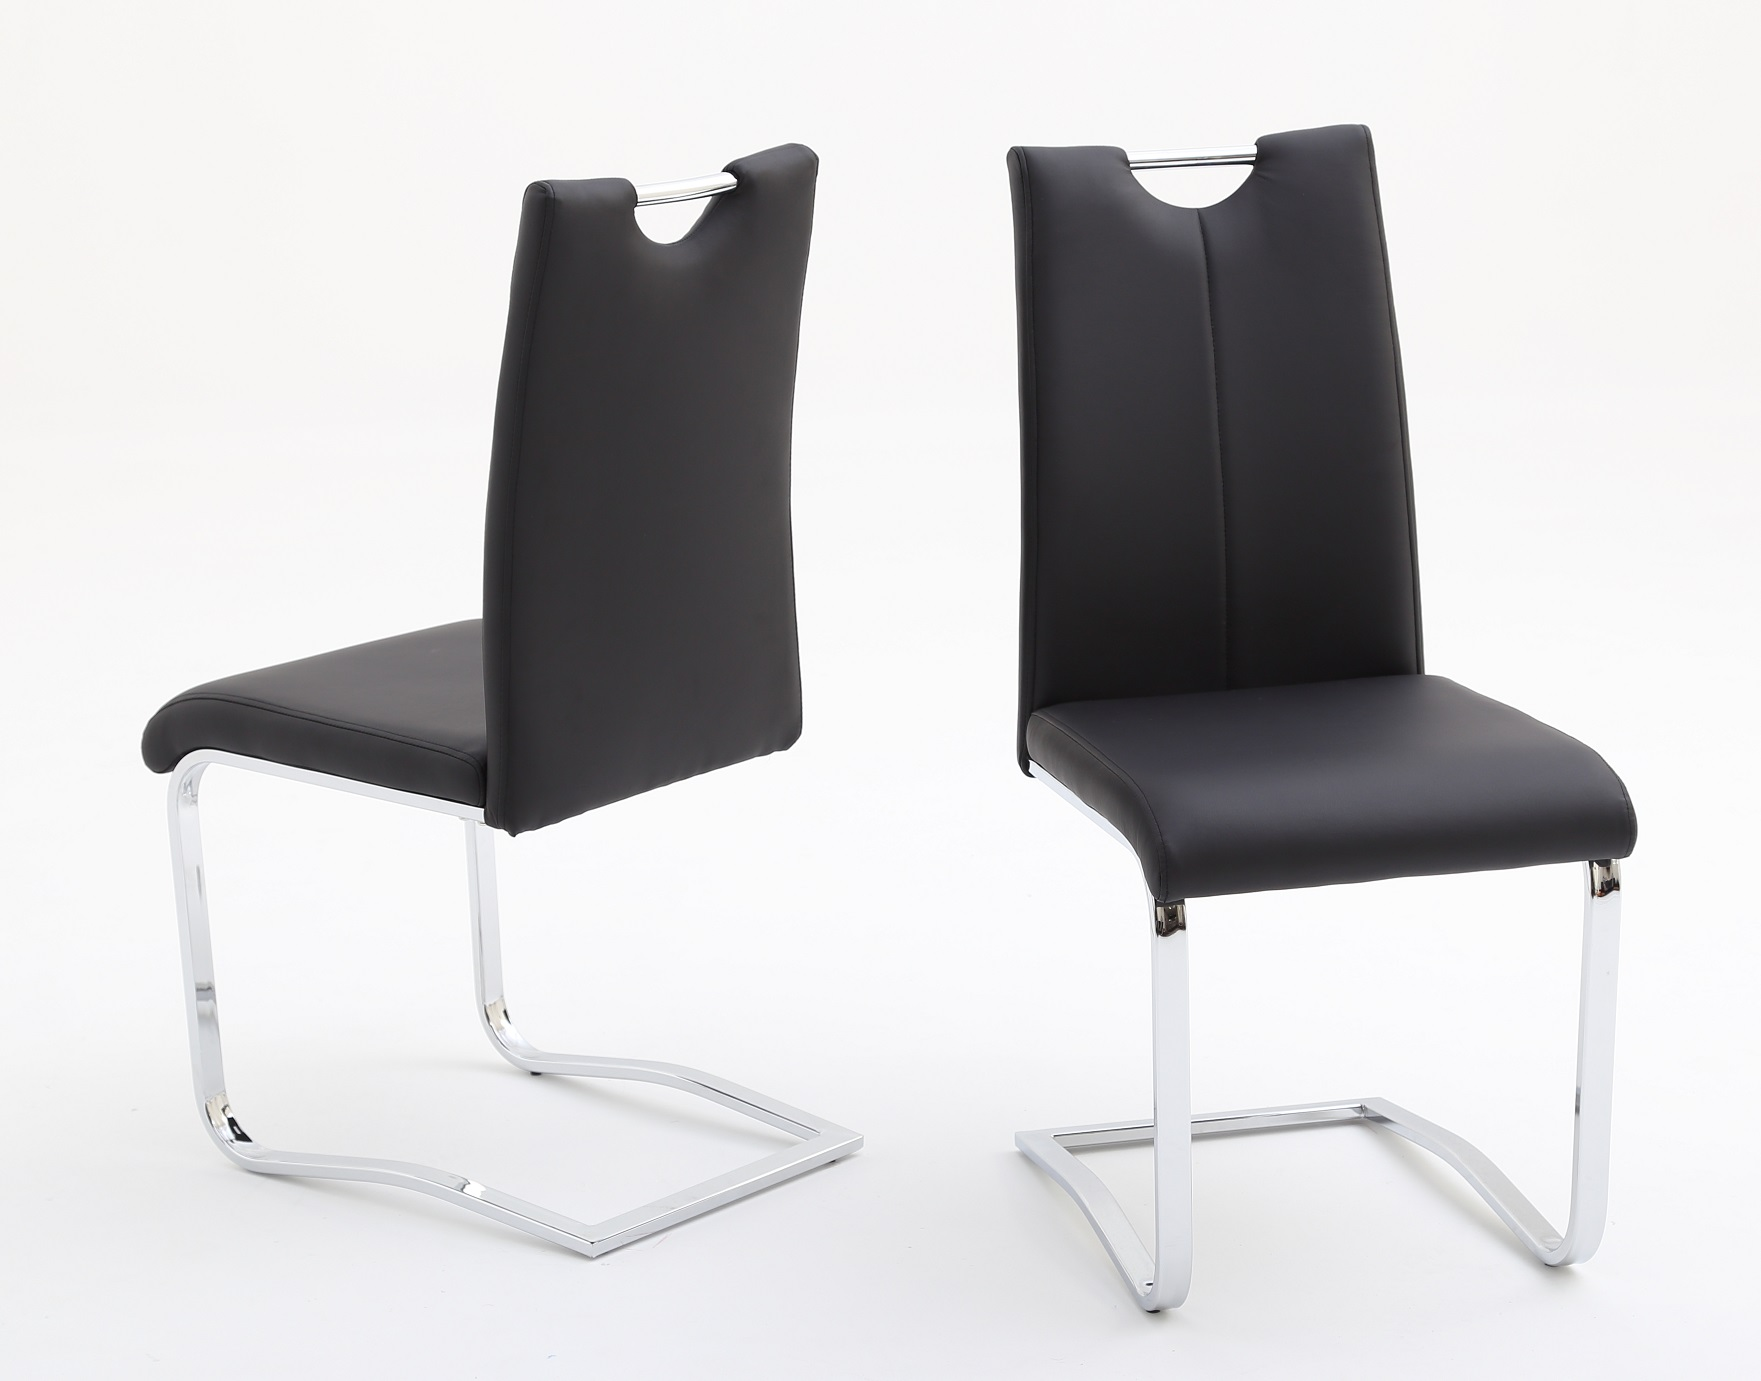 https://www.firstfurniture.co.uk/pub/media/catalog/product/g/a/gabi_chair_black.jpg